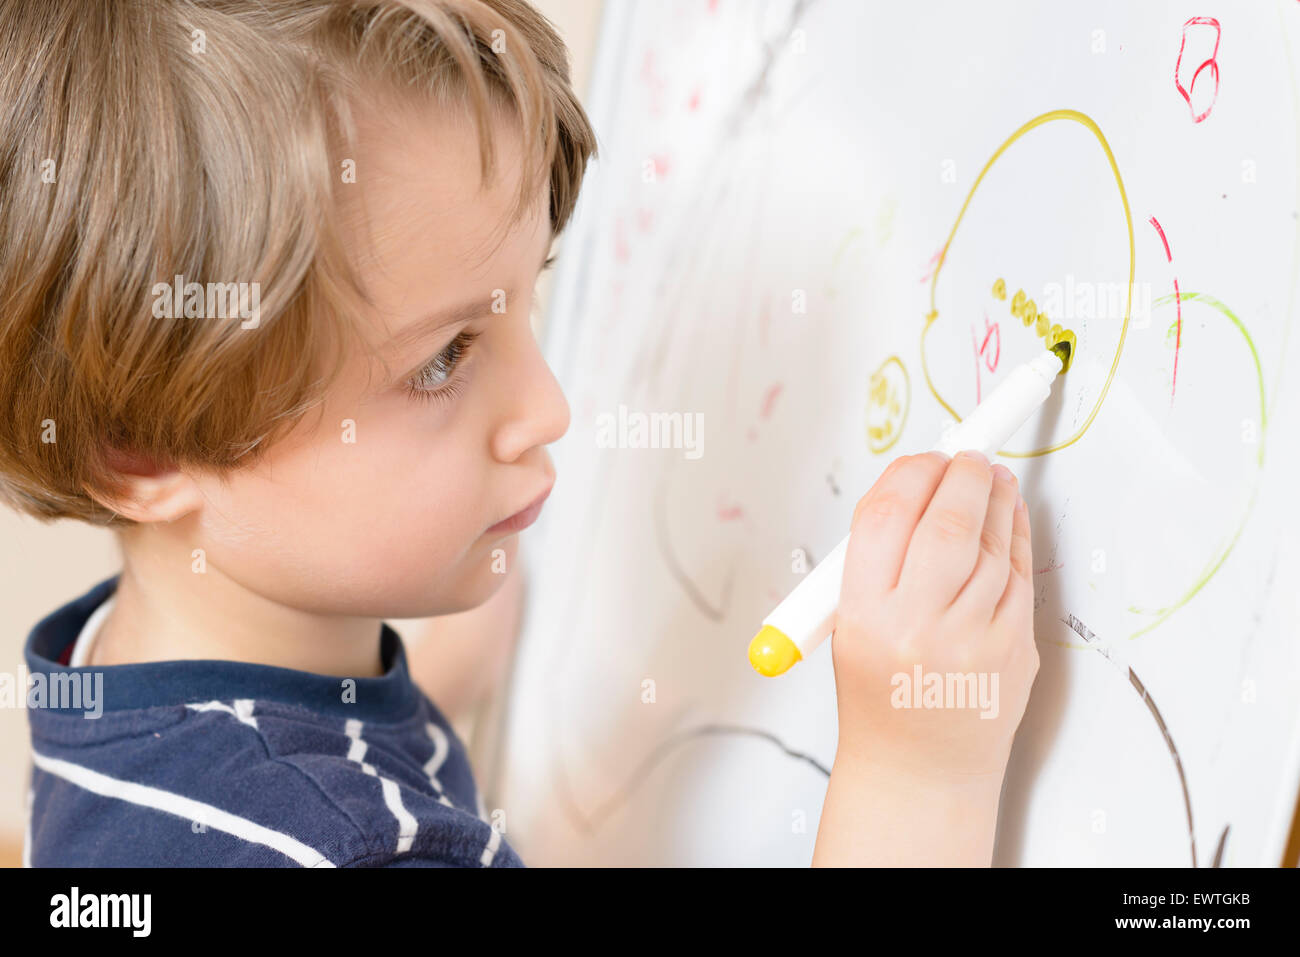 Cute boy drawing at kindergarten on a white board - Stock Image